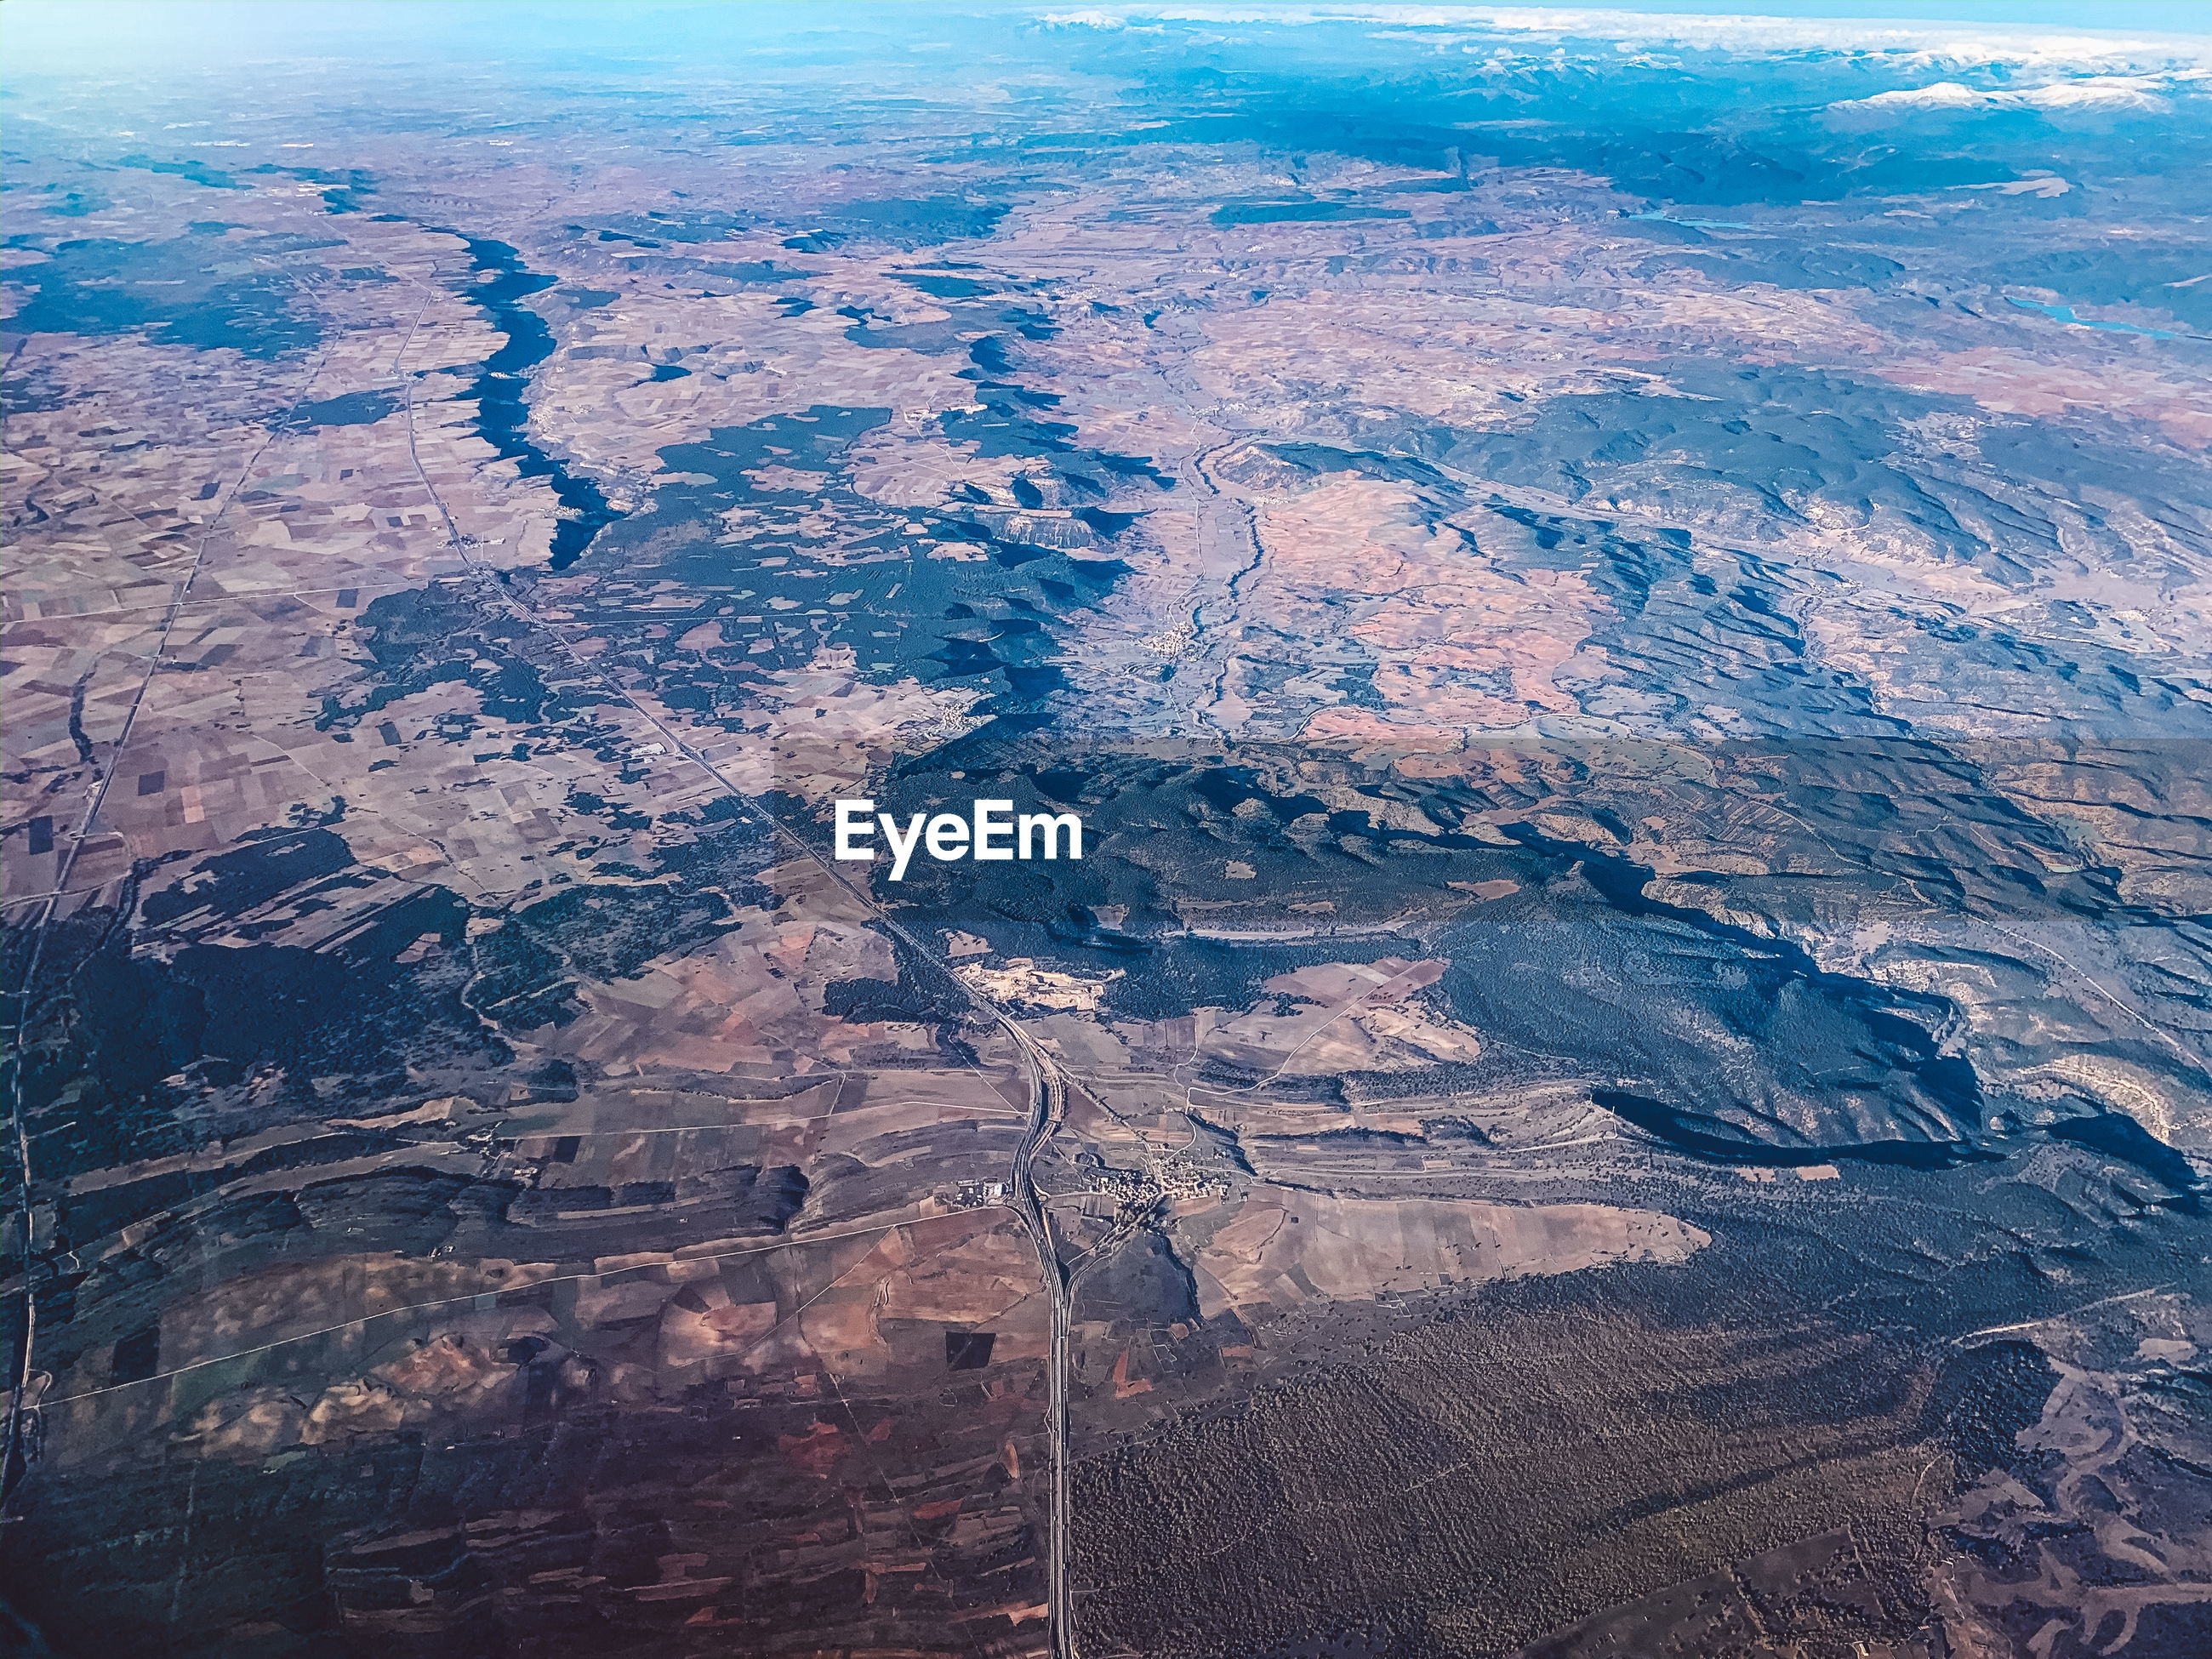 HIGH ANGLE VIEW OF AERIAL VIEW OF LAND